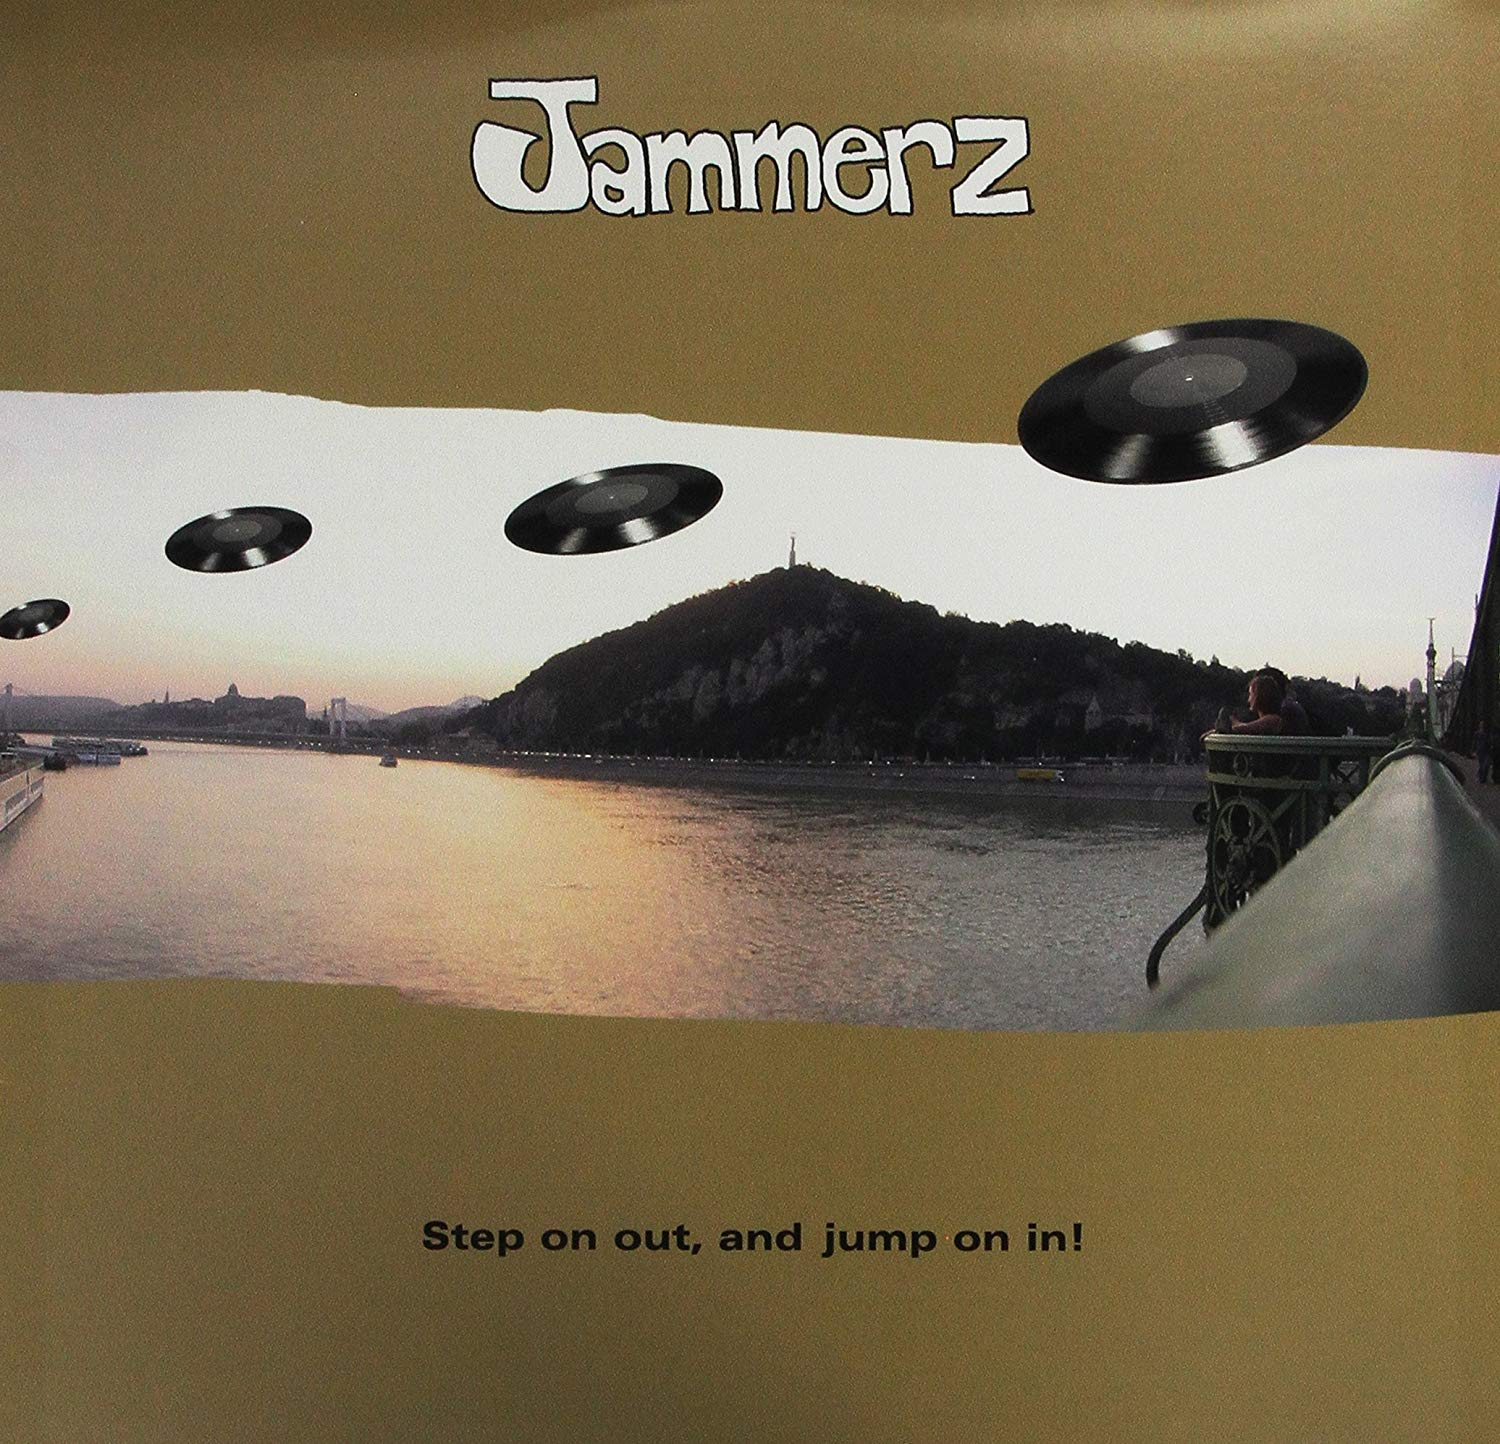 Jammerz - 5 dance floor ready tracks ranging from deep house to tech house to funk